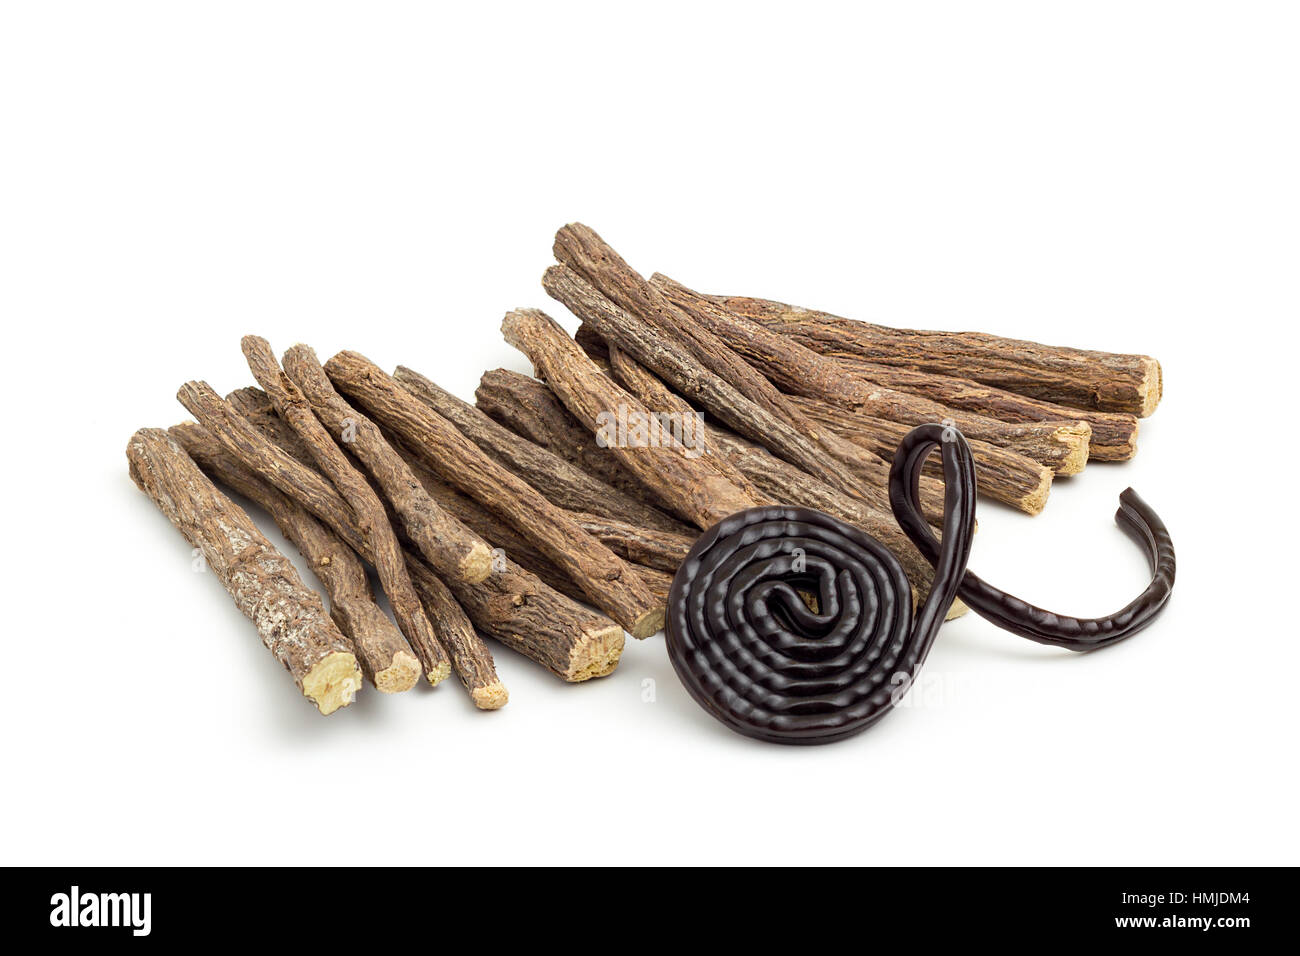 Liqorice roots and black wheel on white background - Stock Image